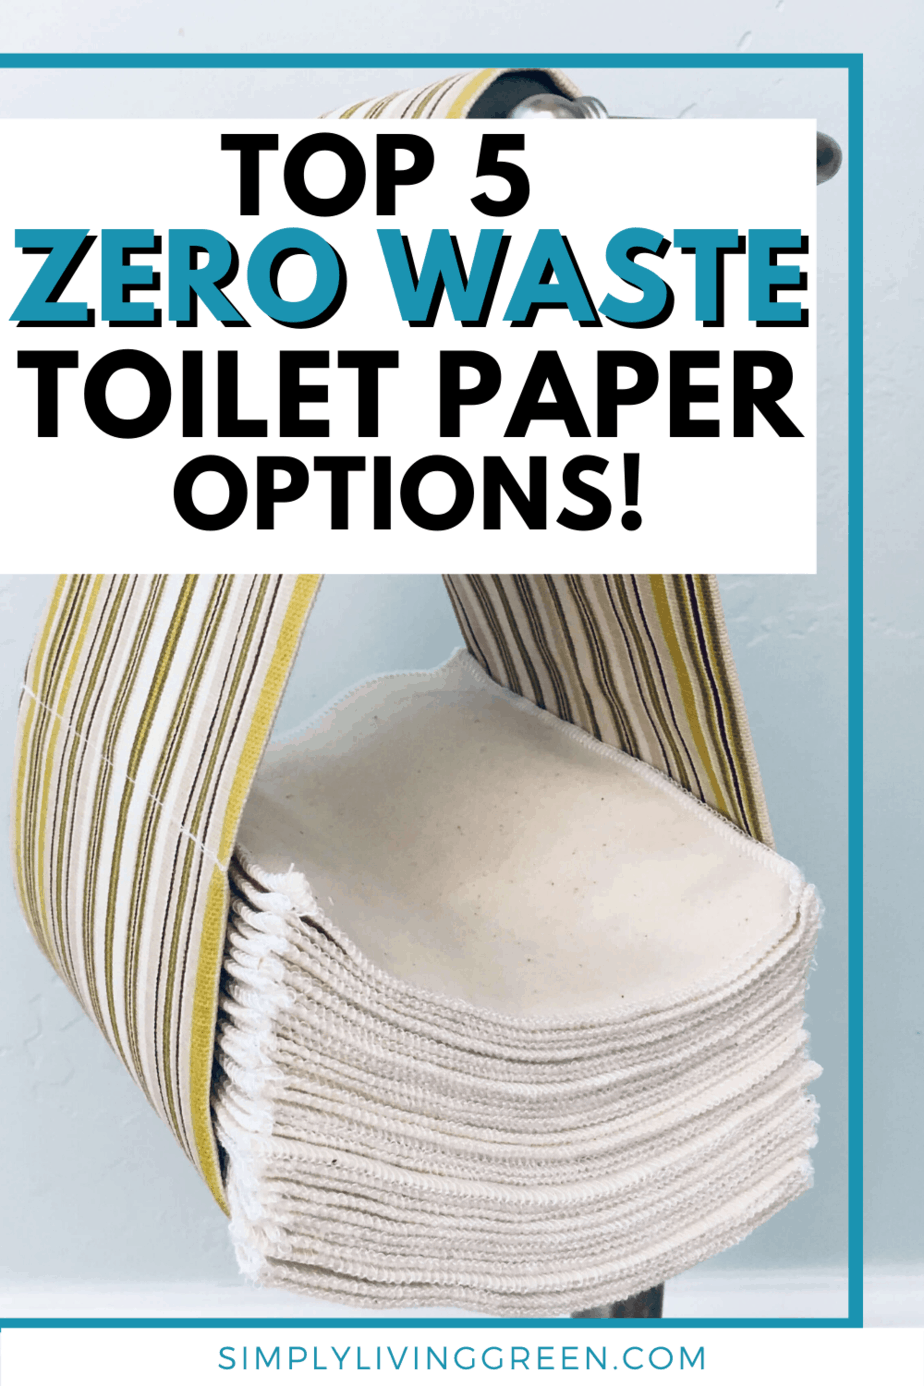 Top 5 Zero Waste Toilet Paper Options | Simply Living Green